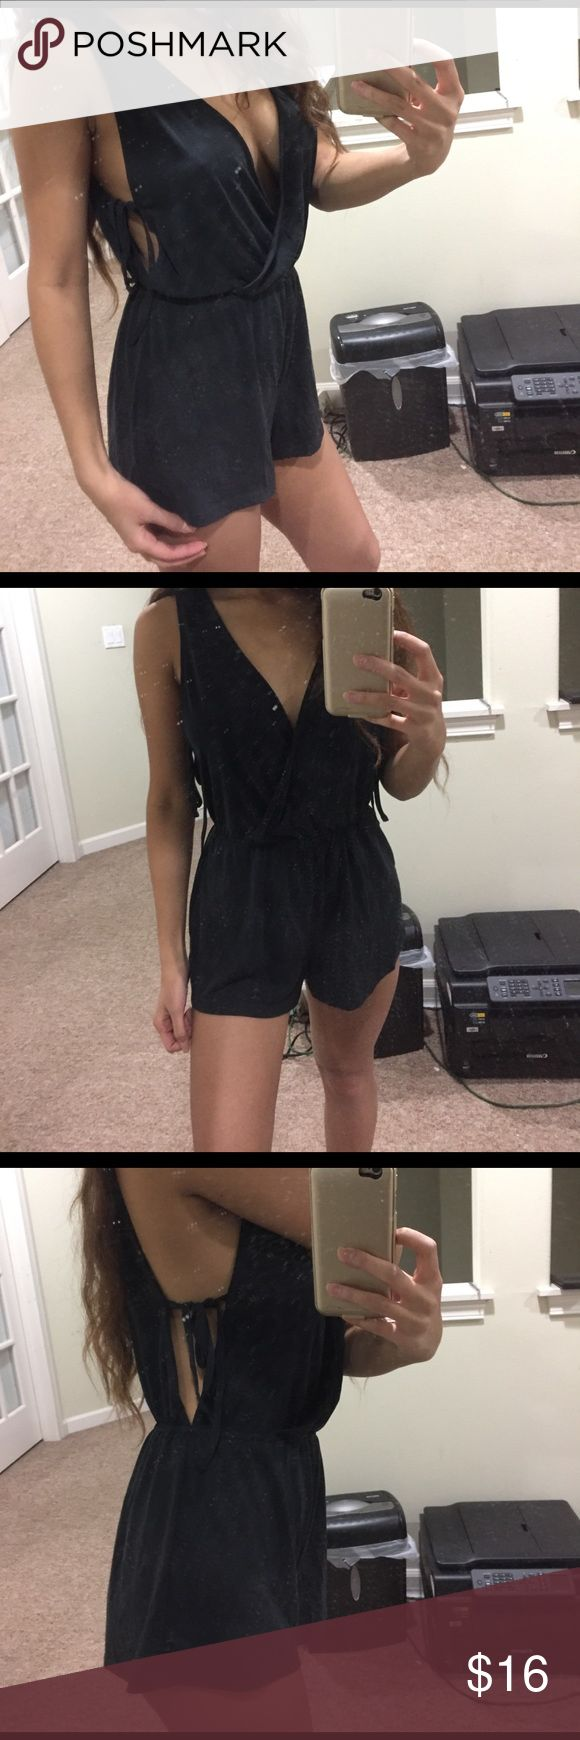 Forever 21 Romper Suede material, only worn once, navy blue with opening & adjustable strings on side Forever 21 Shorts